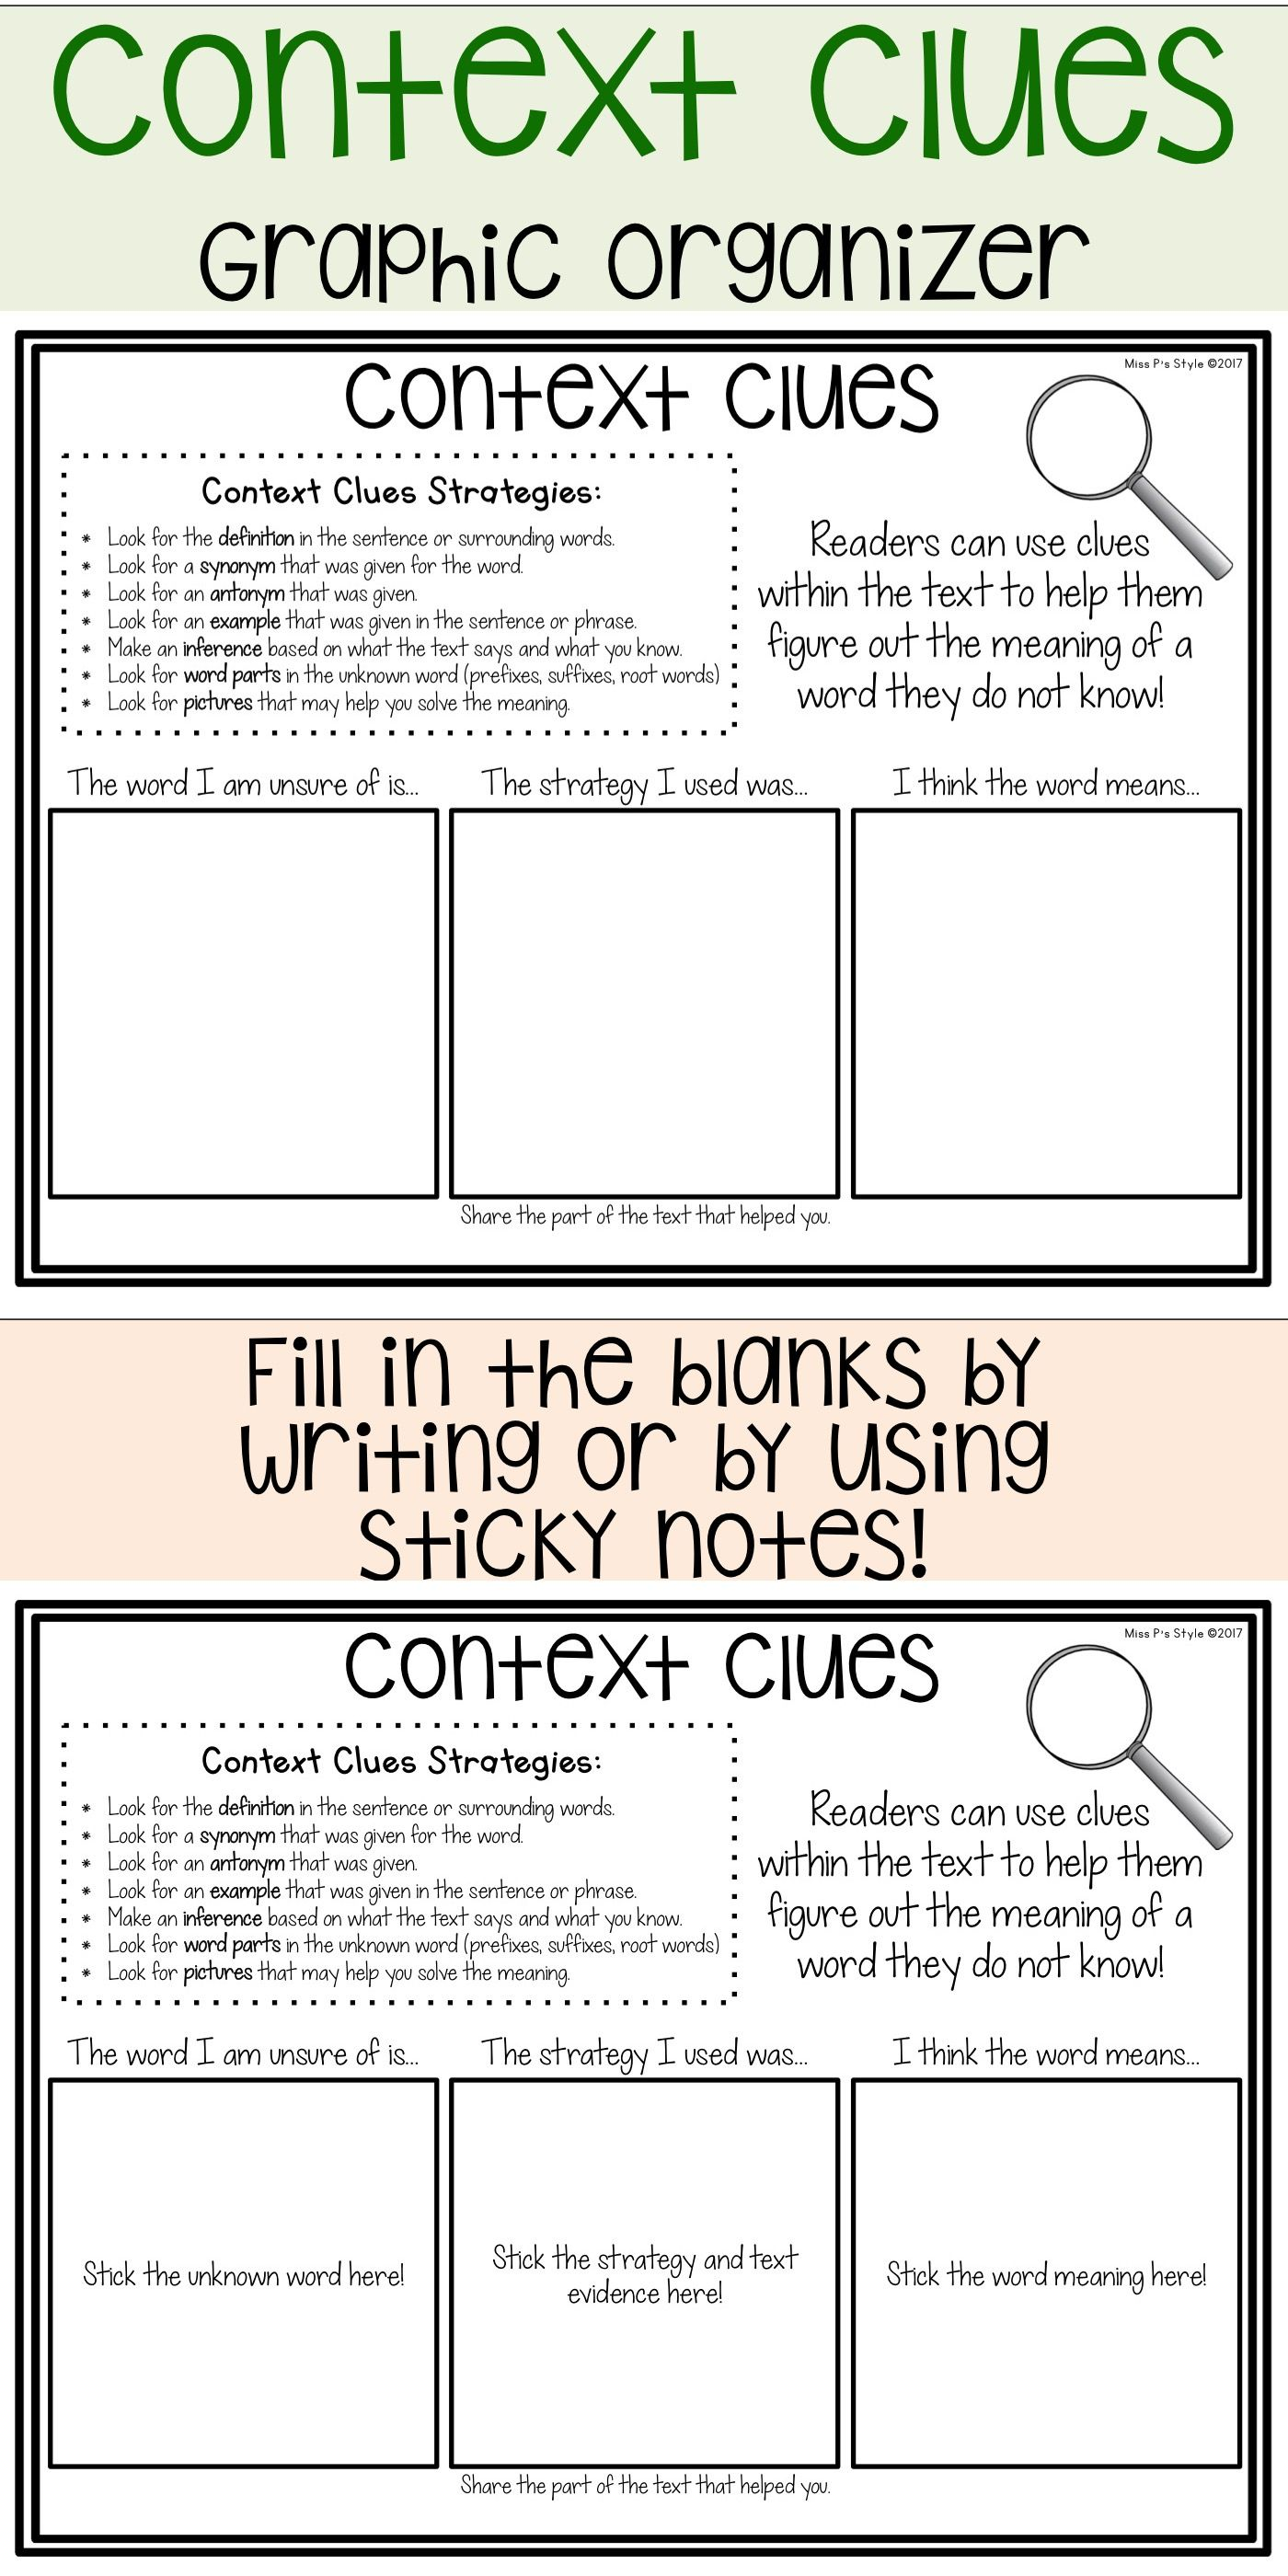 Reading Graphic Organizers   Context clues lesson [ 2800 x 1400 Pixel ]